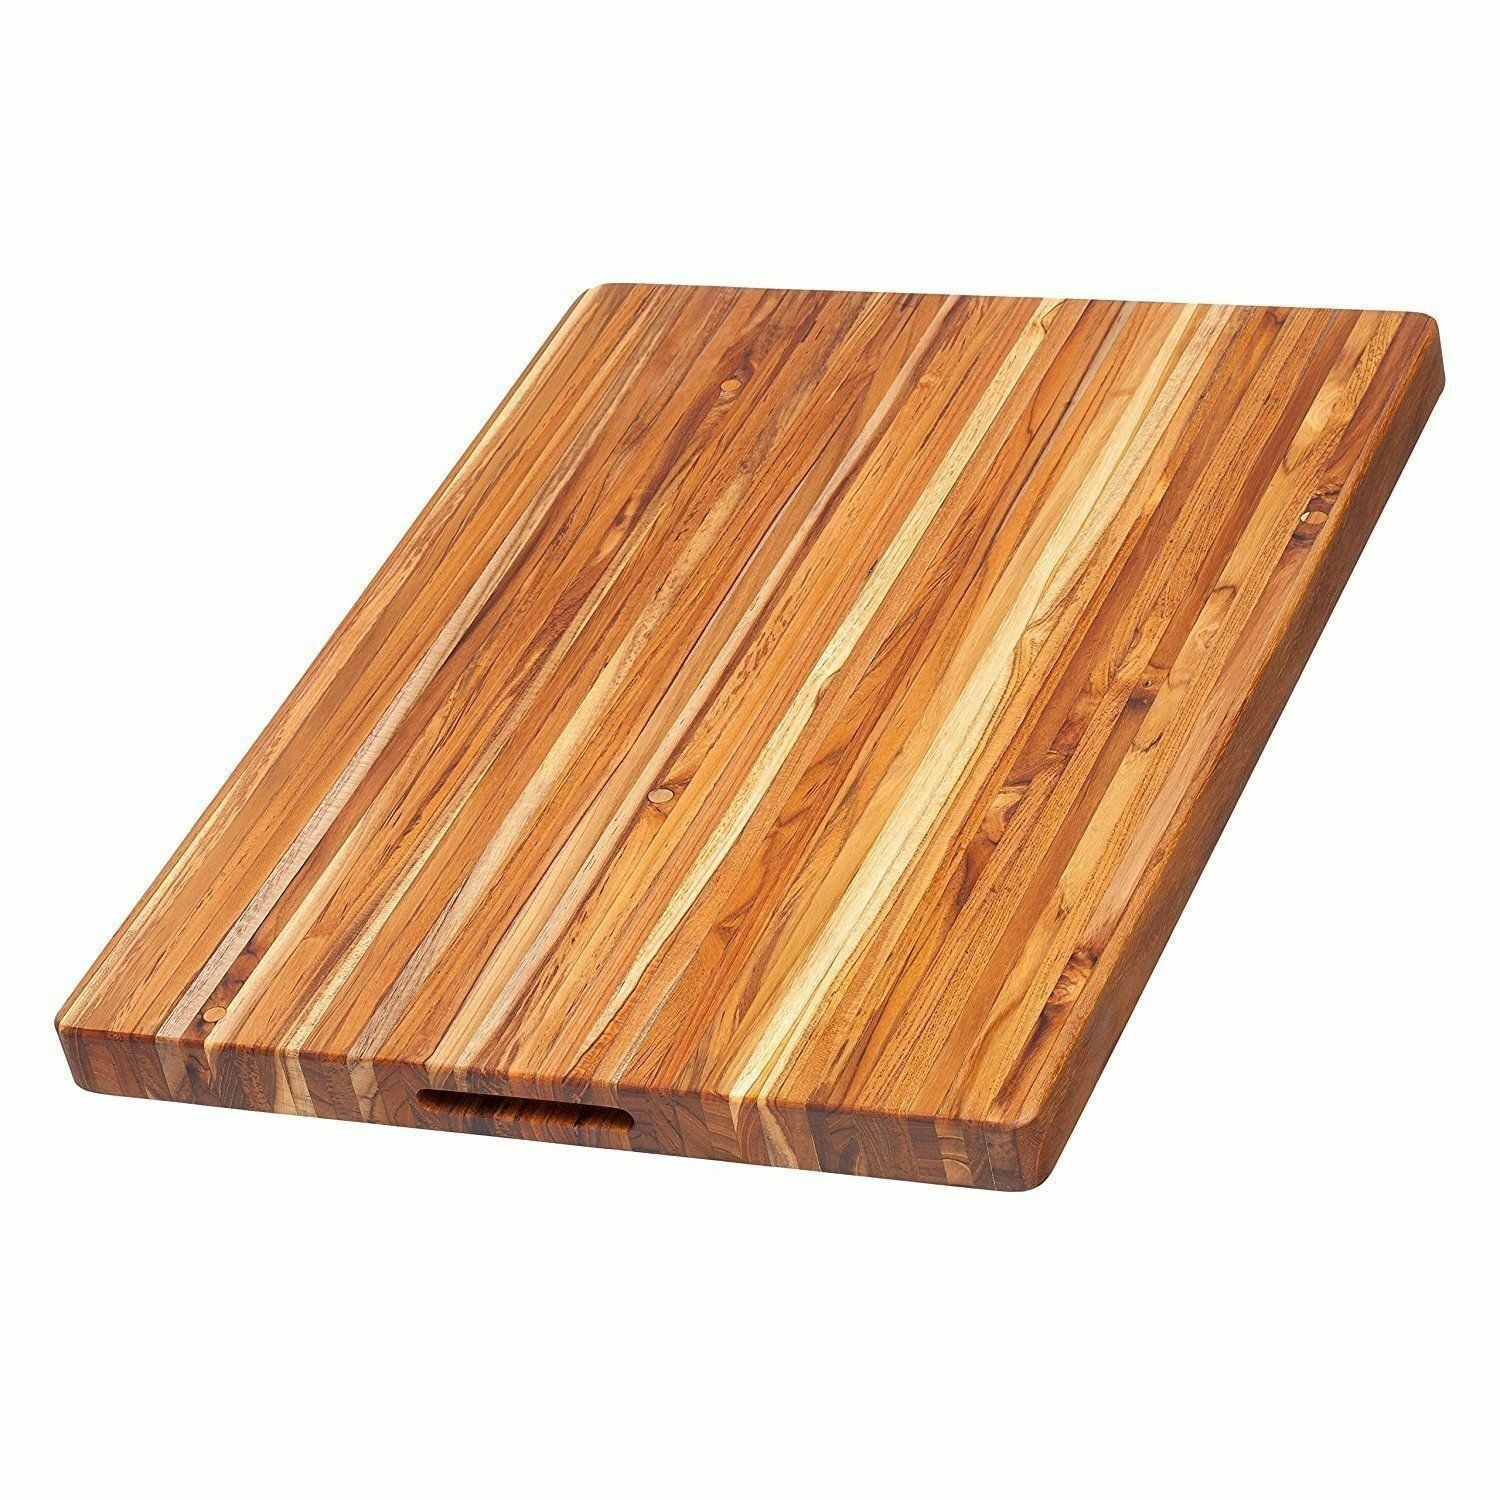 - NEW - Teak Cutting Board - Rectangle Carving Board W Hand Grip 24 x 18 x 1.5